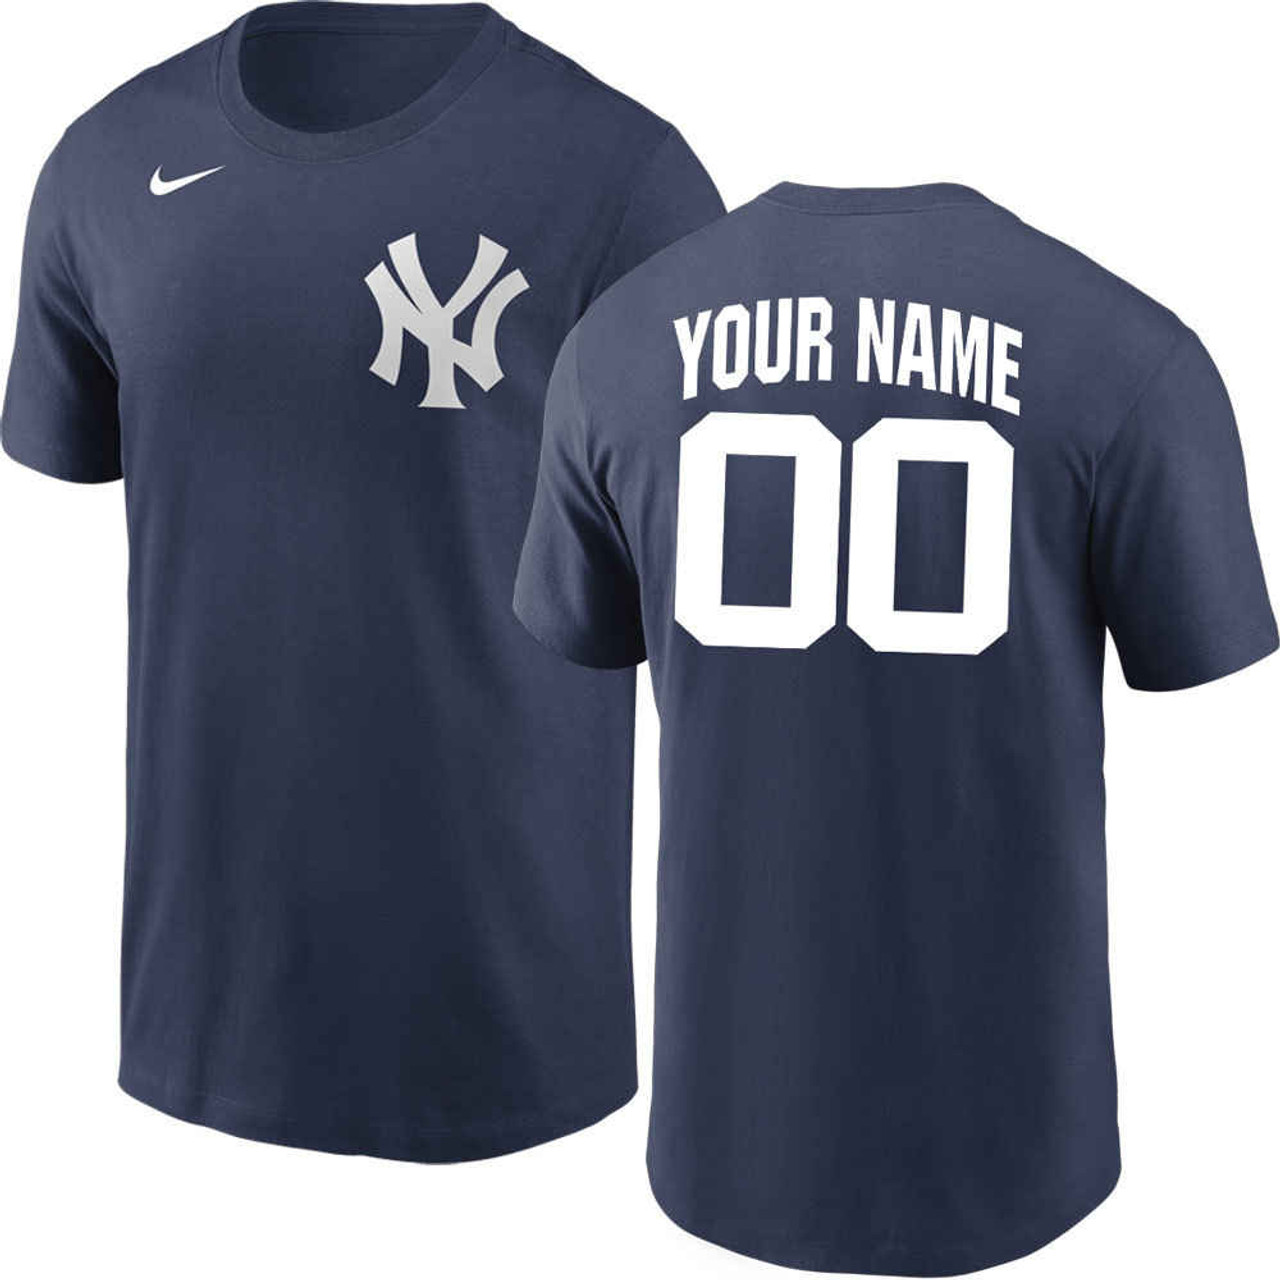 morir Puerto marítimo olvidar  New York Yankees Personalized T-Shirt by Nike | MLB